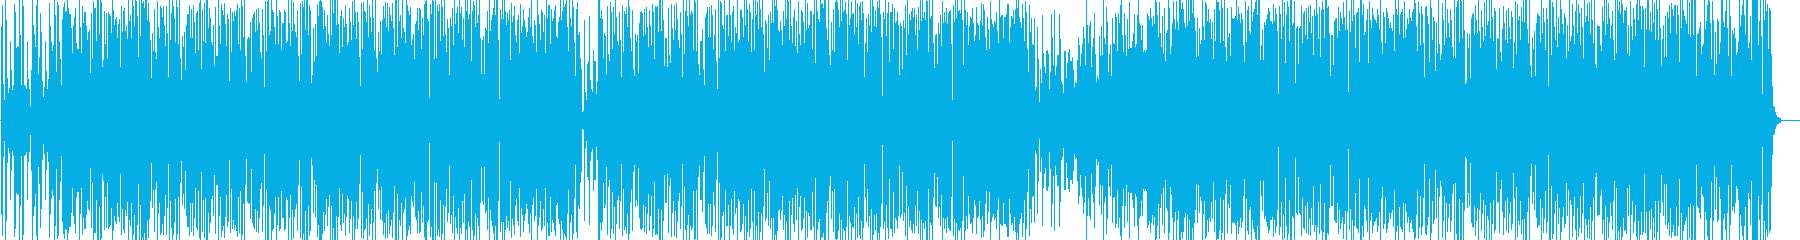 Electronic sound is a lovely song's reproduced waveform